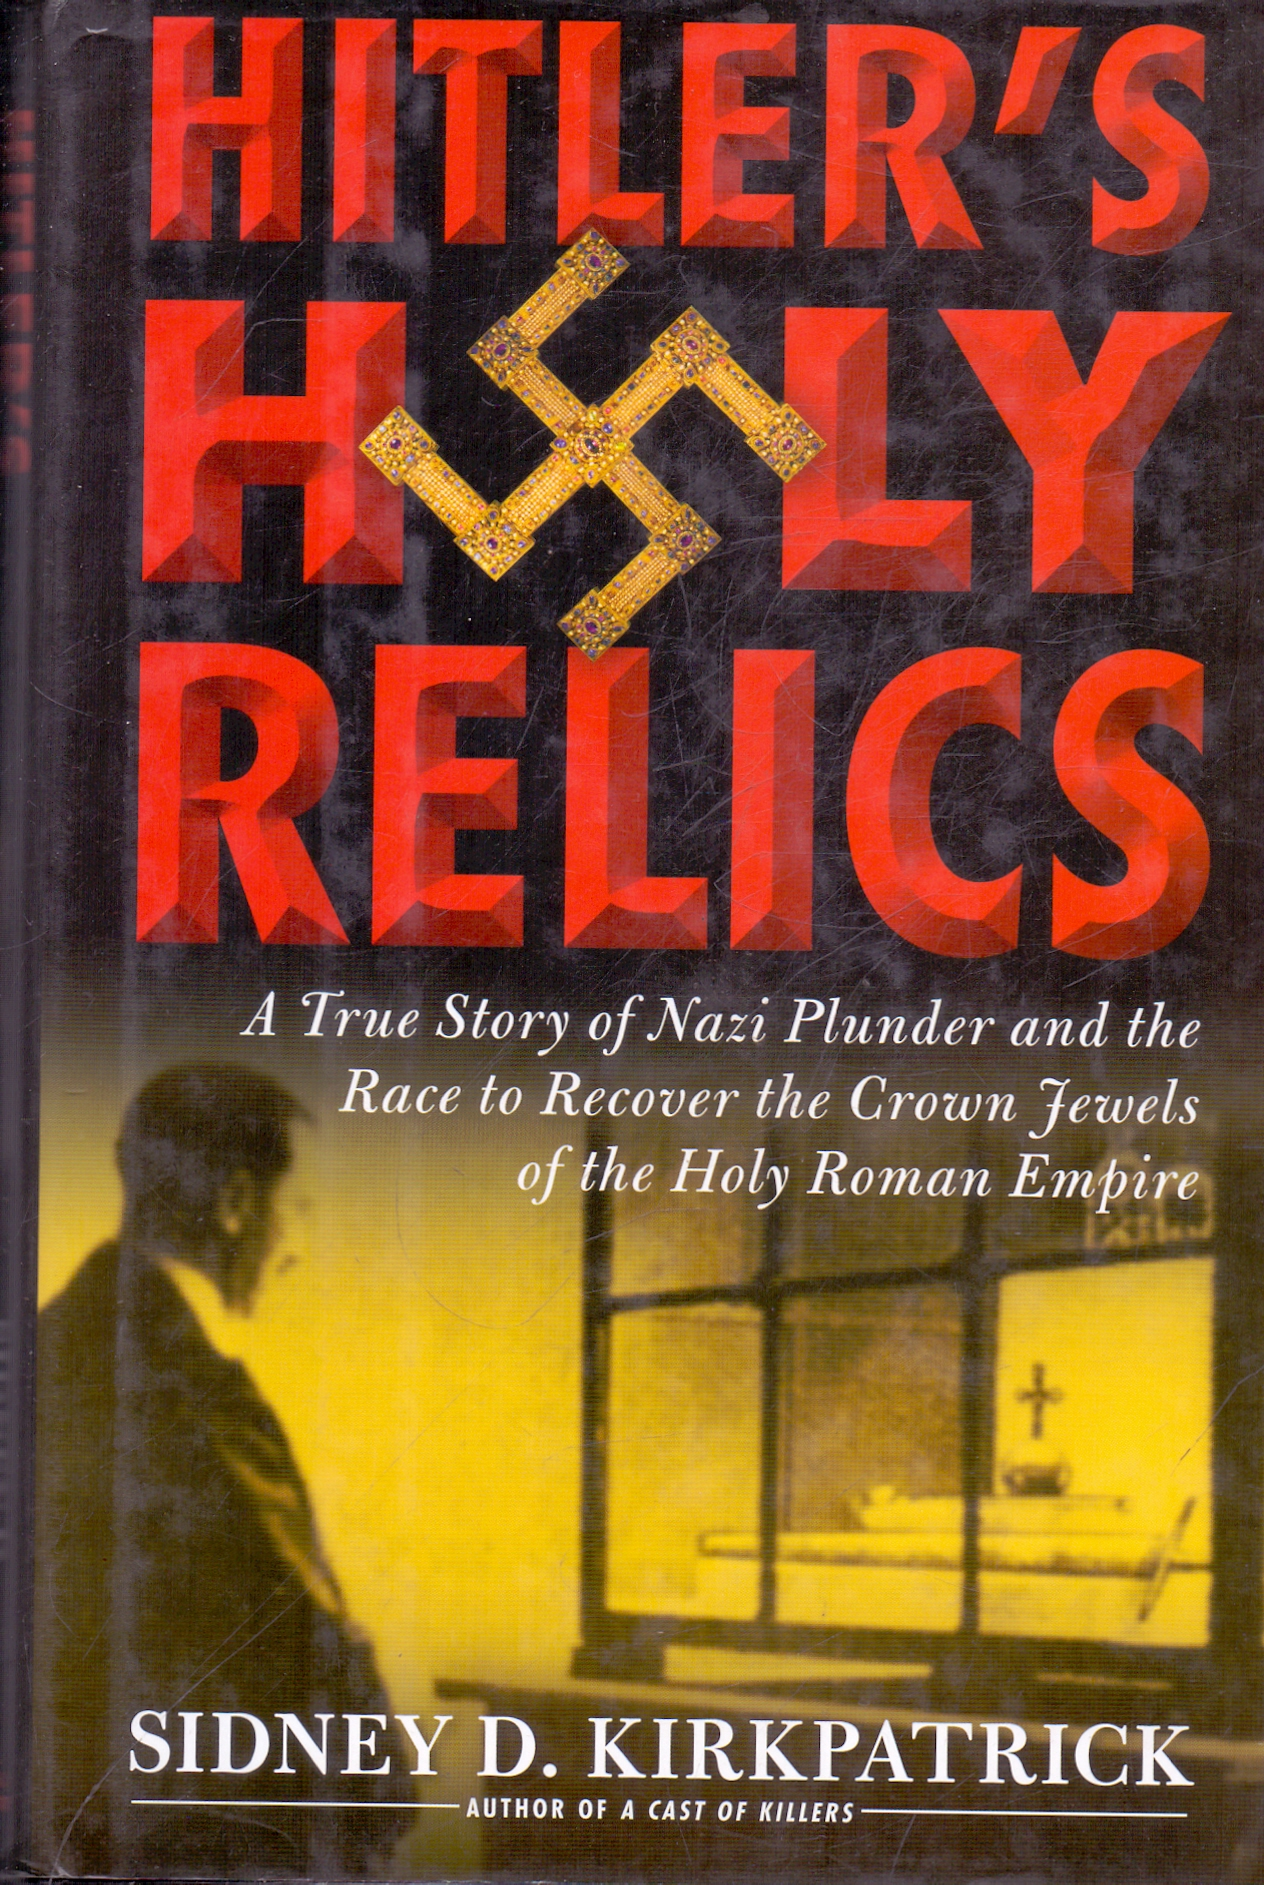 Hitlers Holy Relics